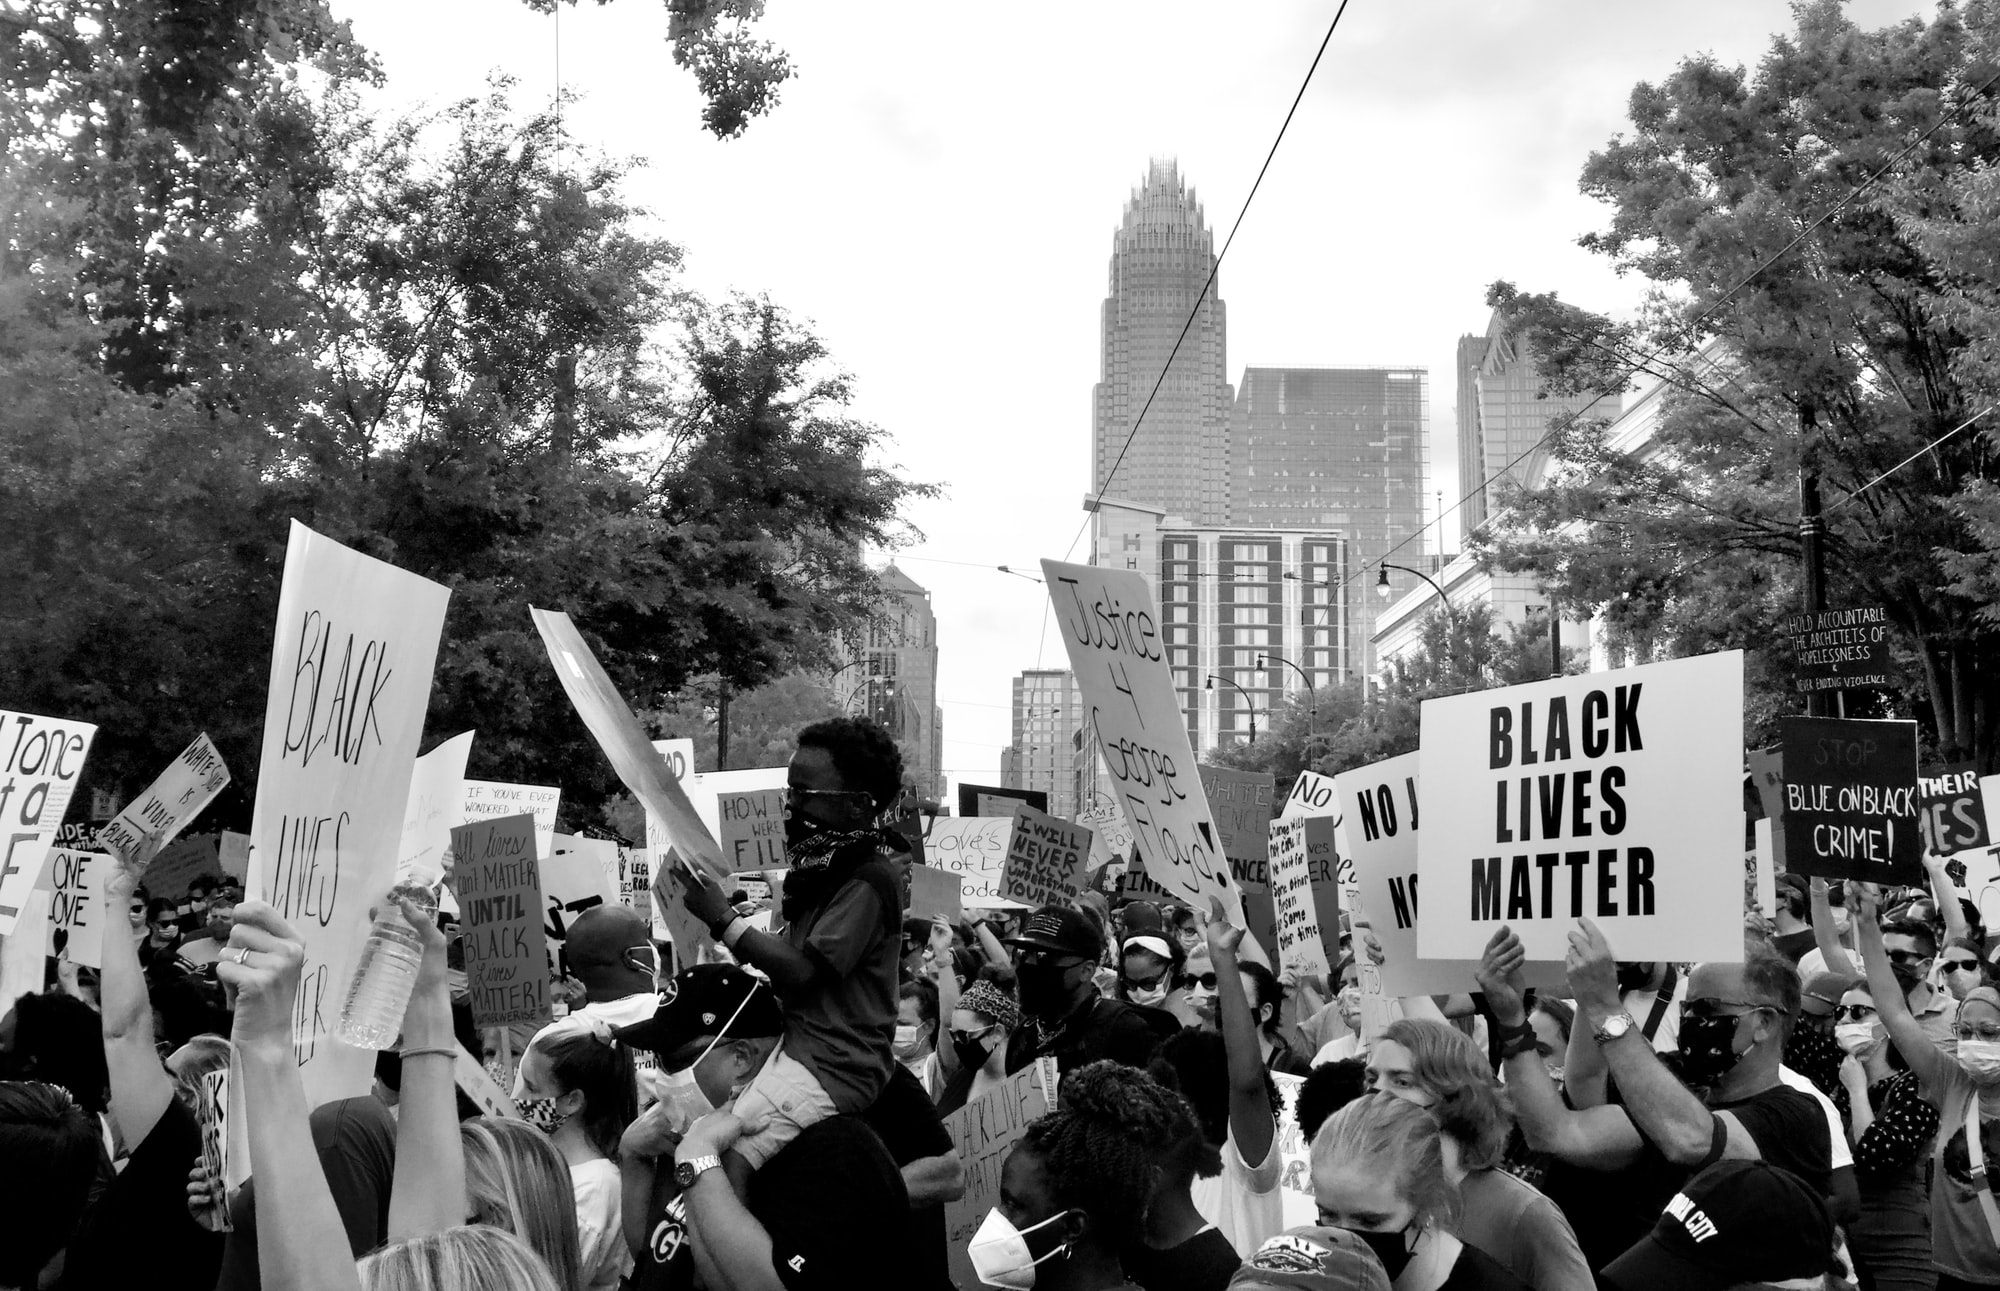 Charlotte NAACP Protest on June 8th, 2020